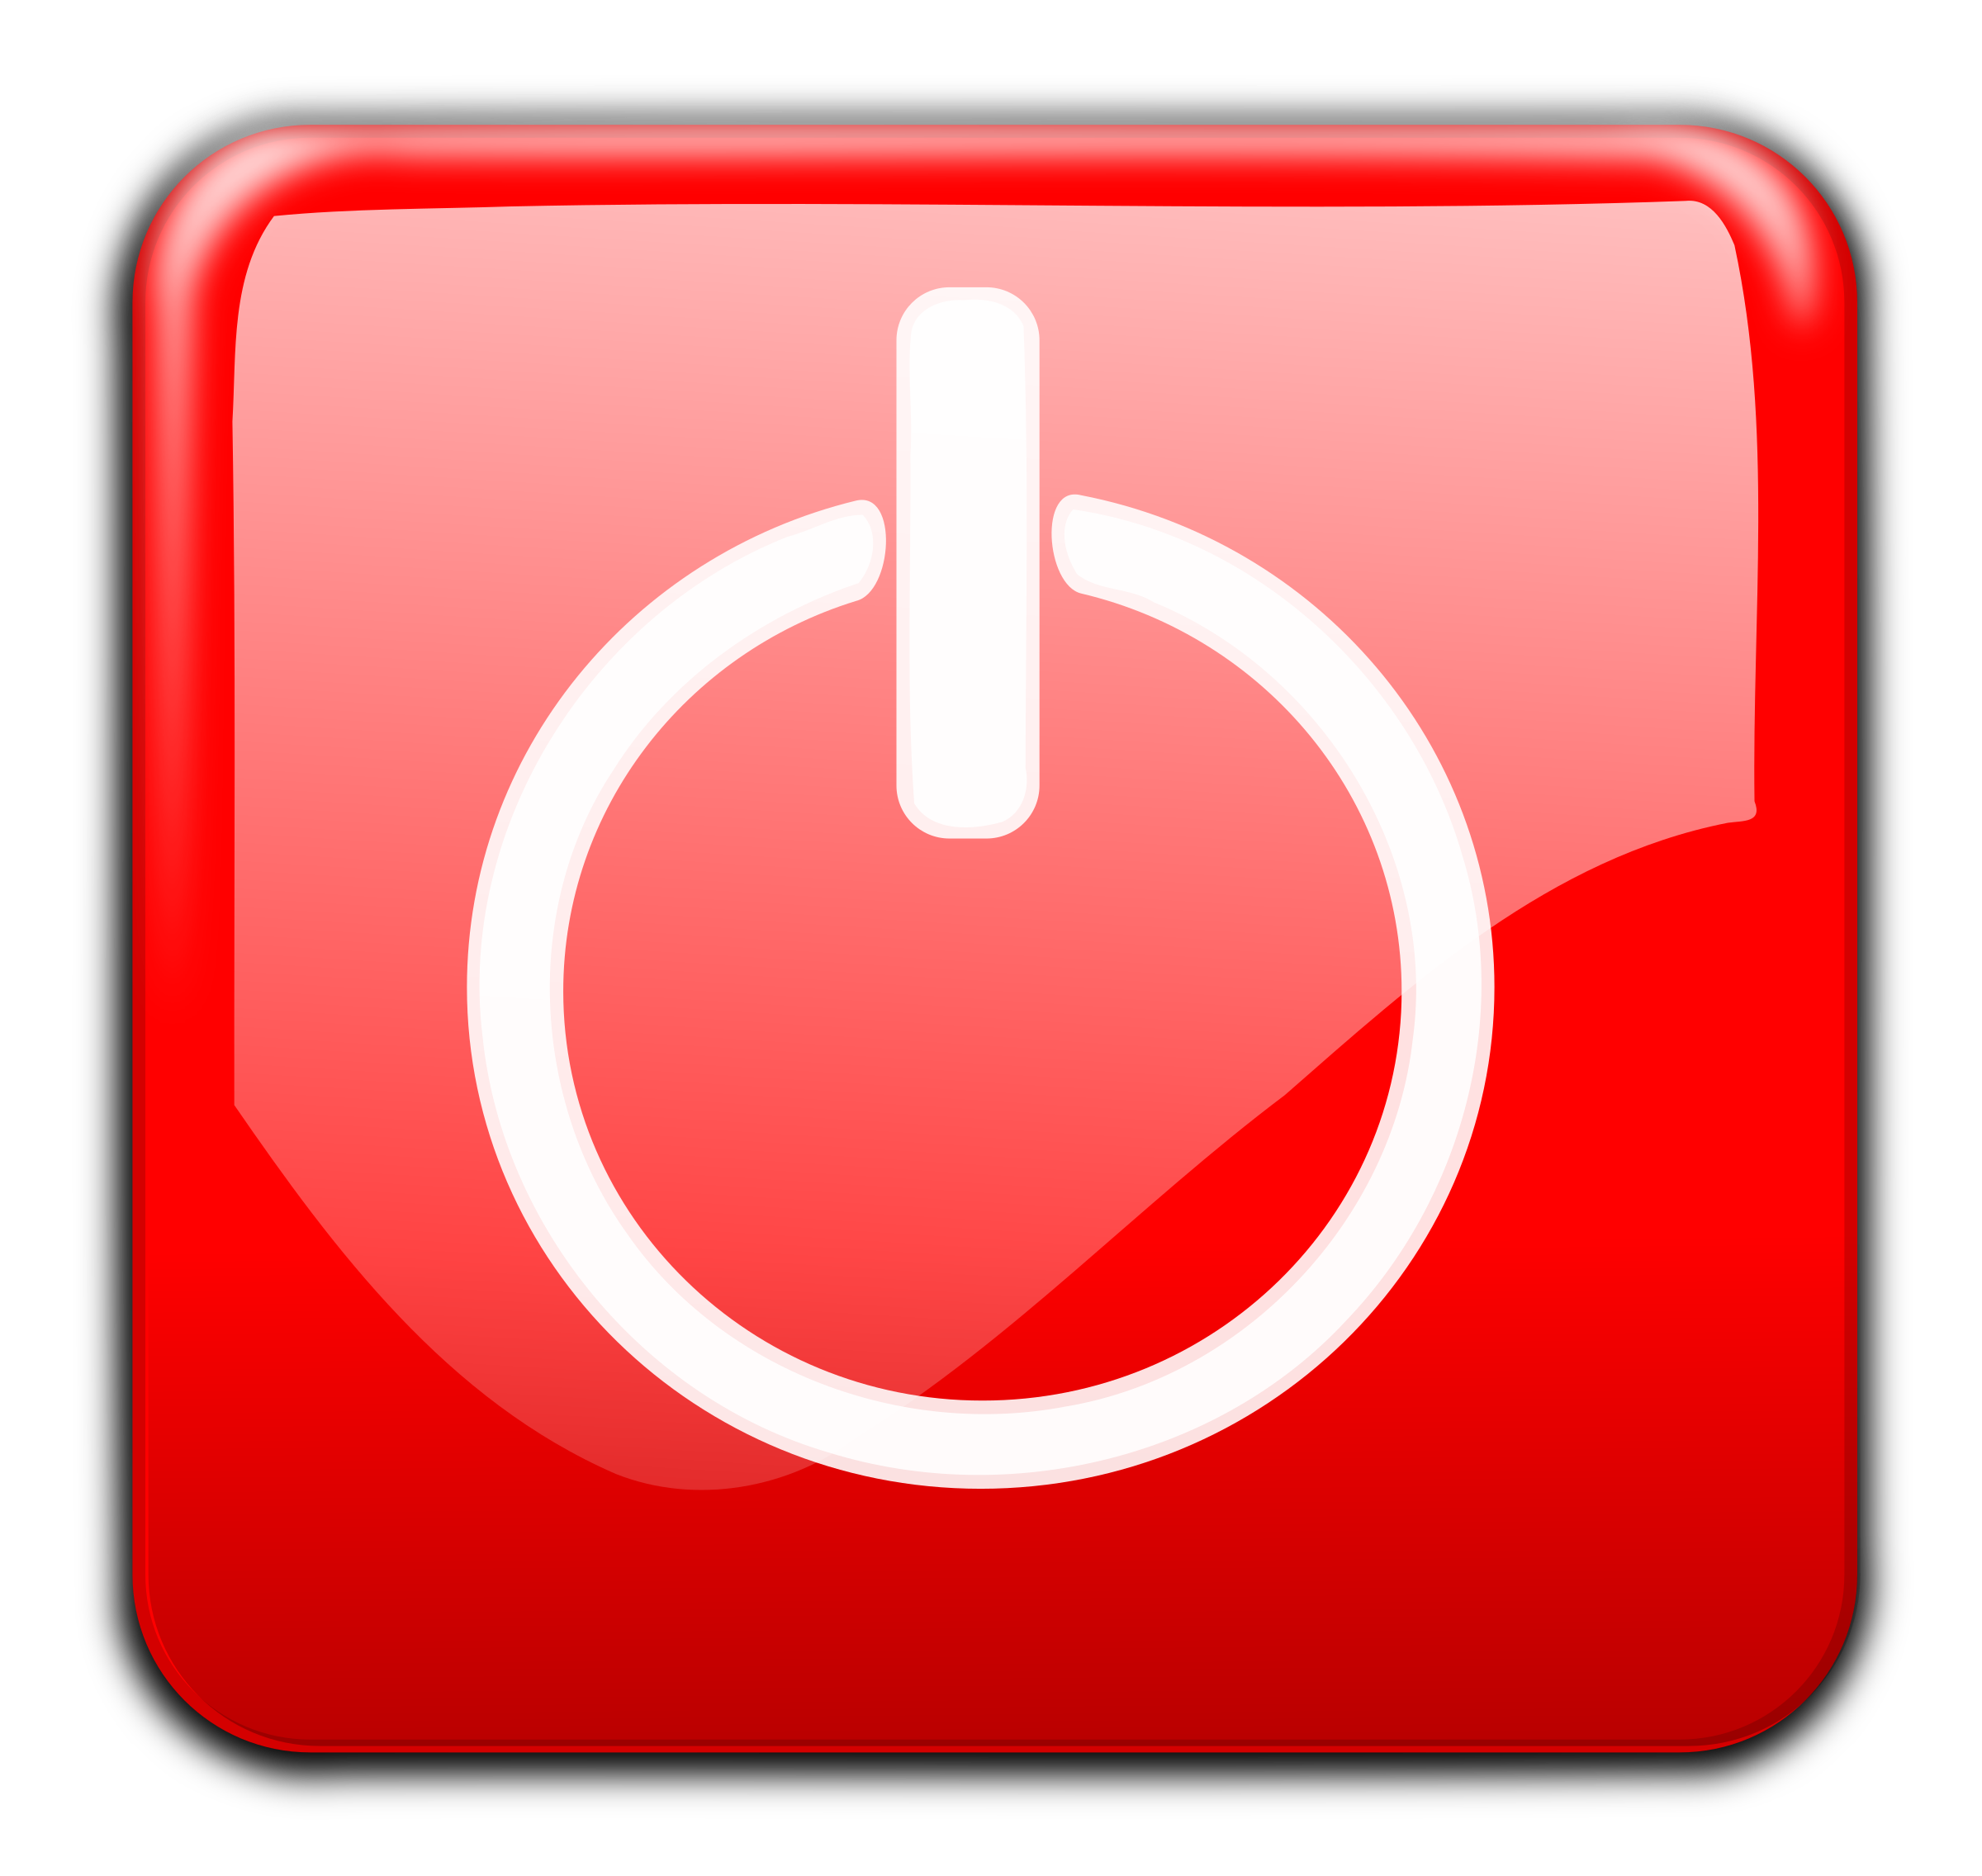 Shutdown Button clipart Button Clipart Button Shutdown Shutdown